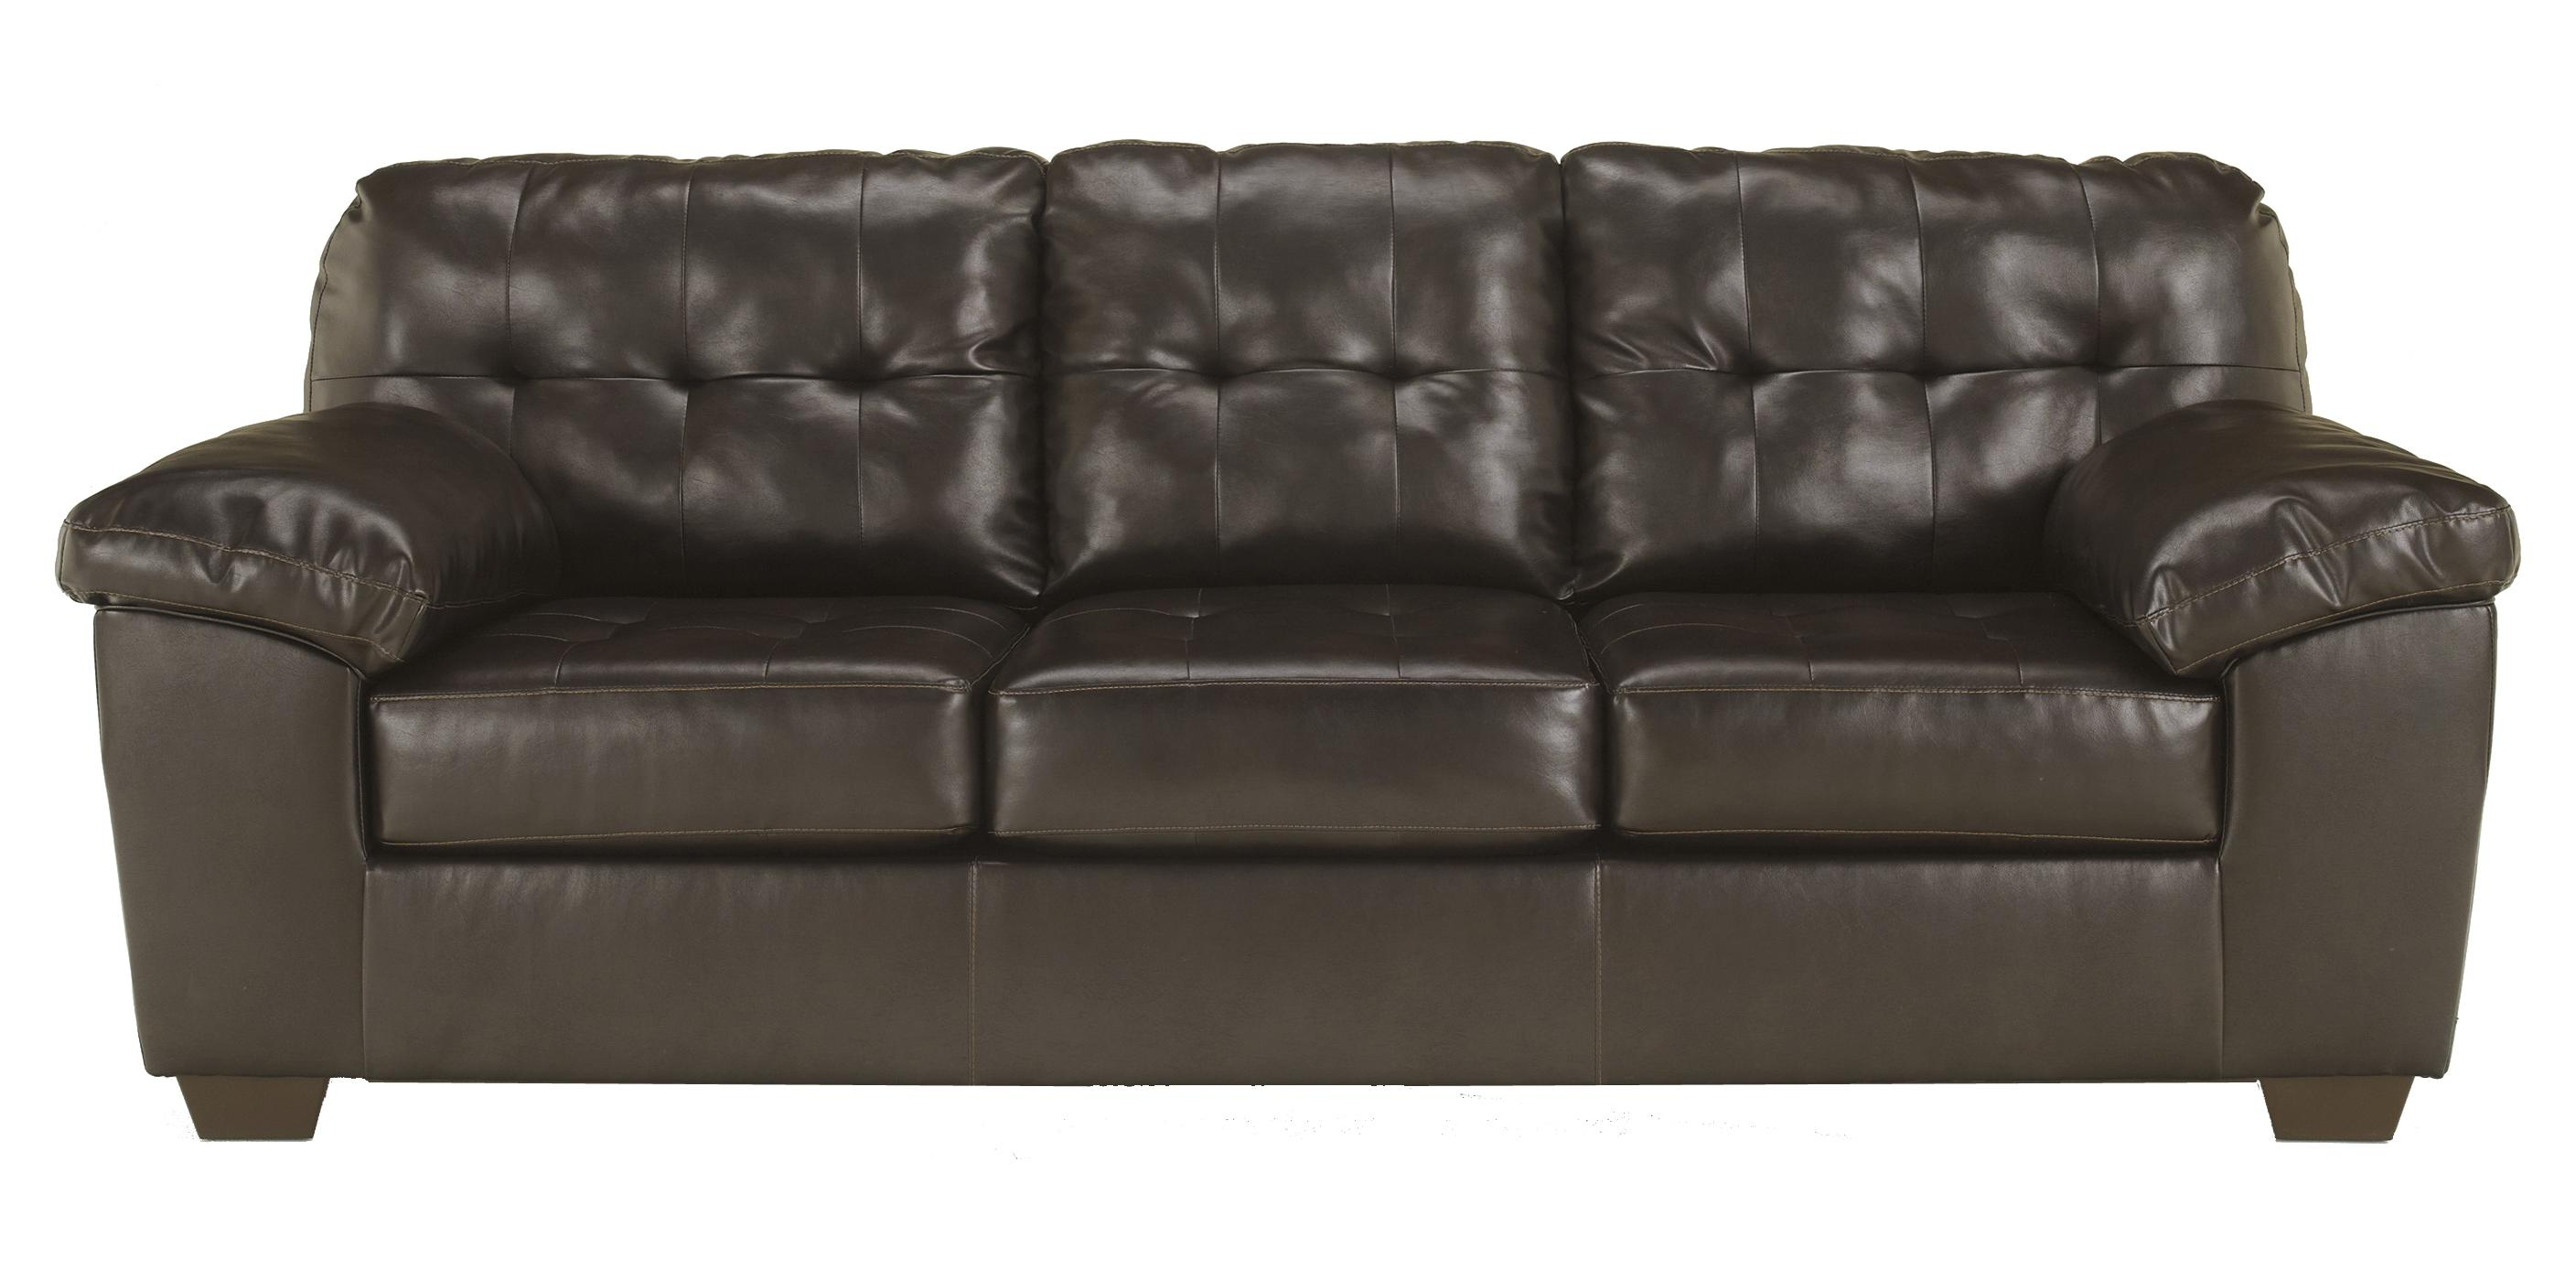 Alliston DuraBlend® - Chocolate Queen Sofa Sleeper by Signature Design by Ashley at Beds N Stuff